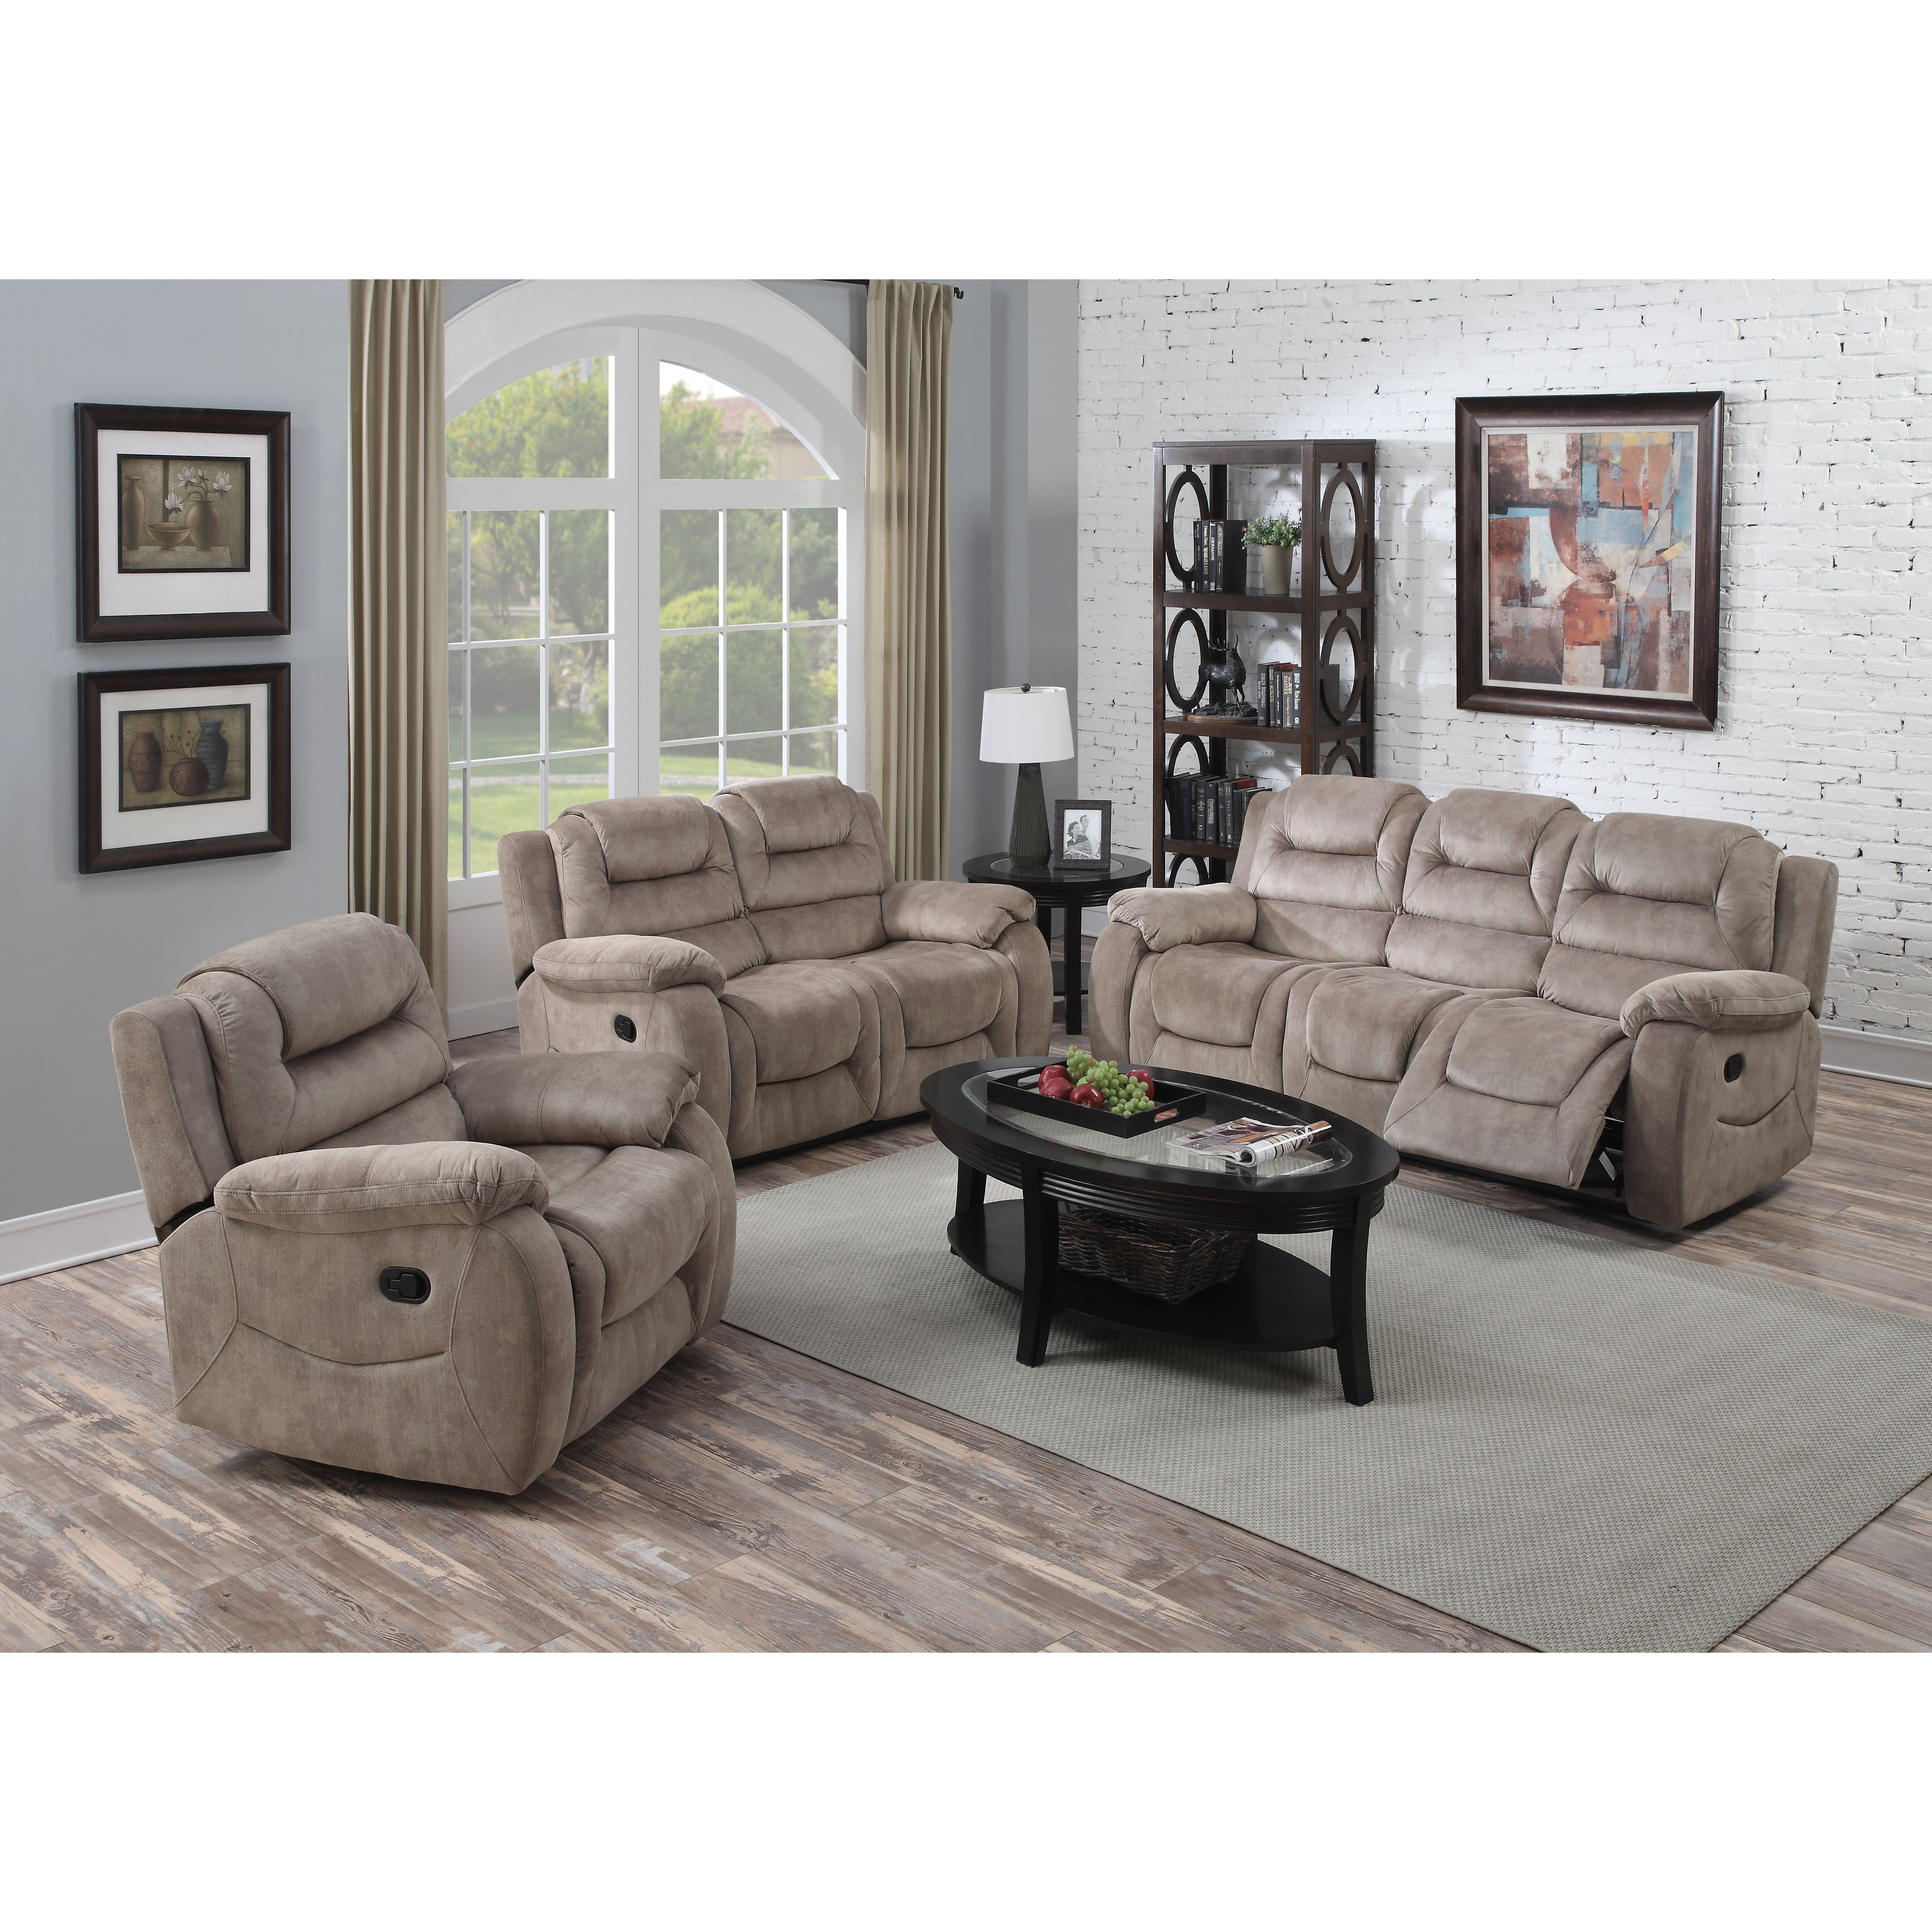 Living Room Collection Furniture Acme Furniture Dreka Living Room Collection Wayfair